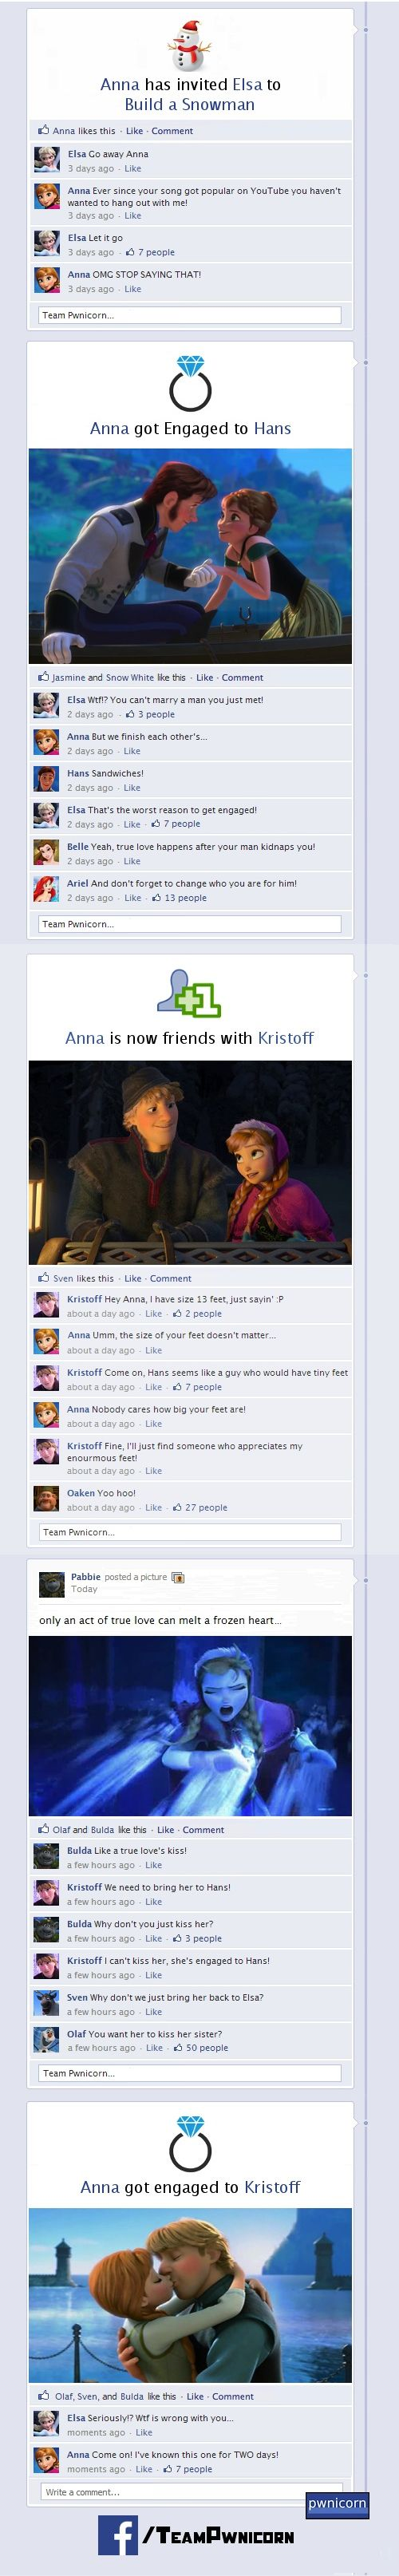 Disney's Frozen on facebook